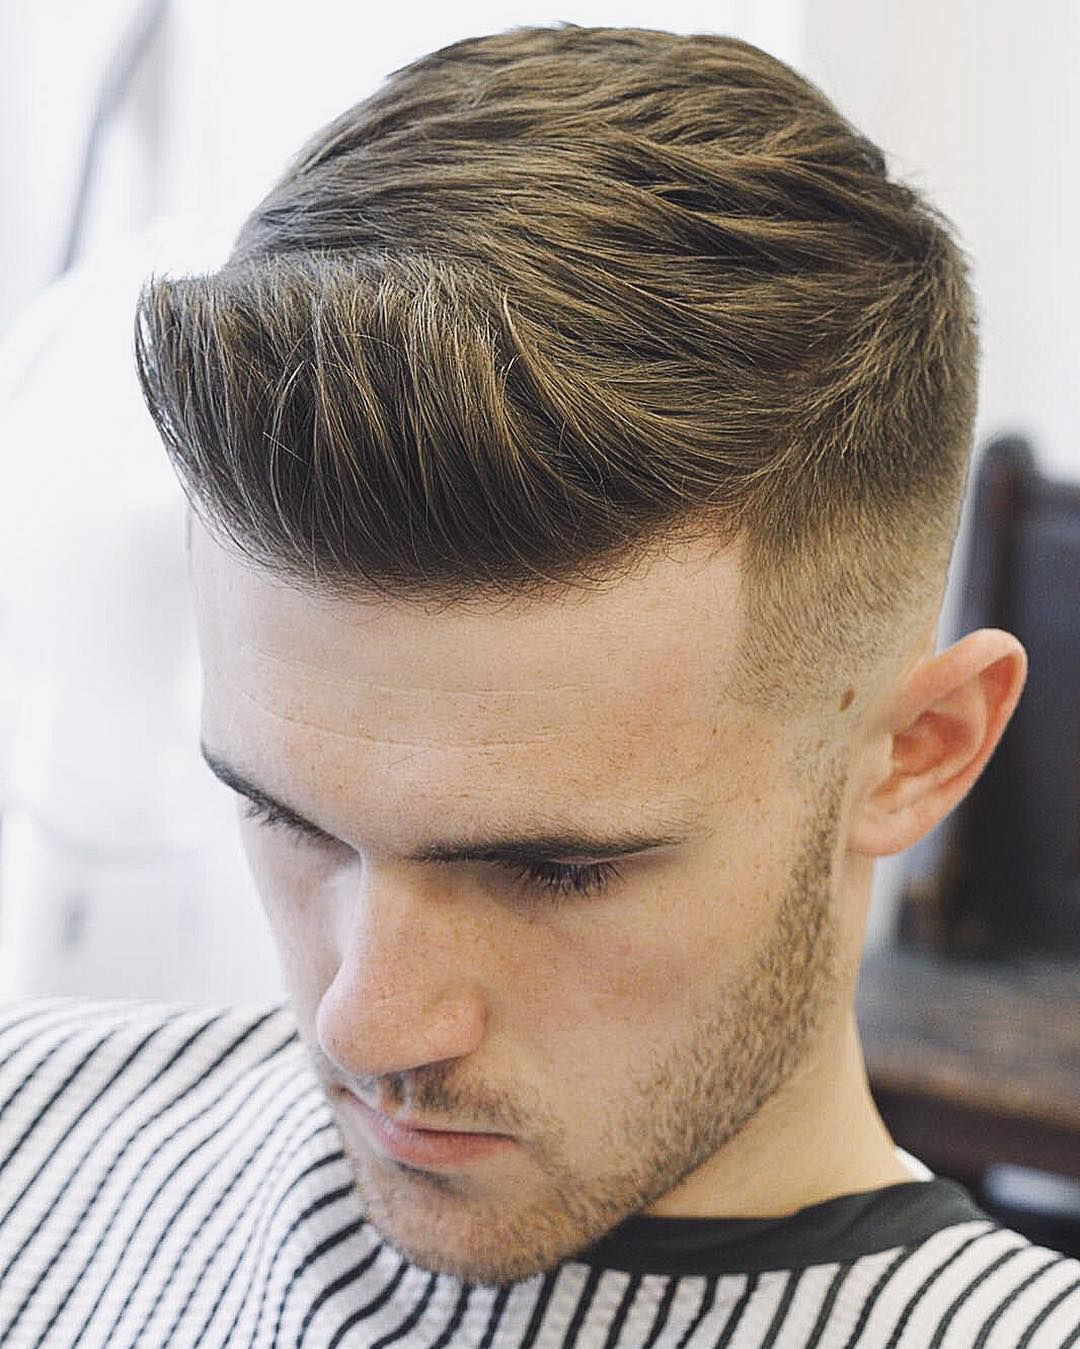 80 New Hairstyles For Men 2020 Update Mens Hairstyles Quiff Haircuts For Men Mens Hairstyles Short